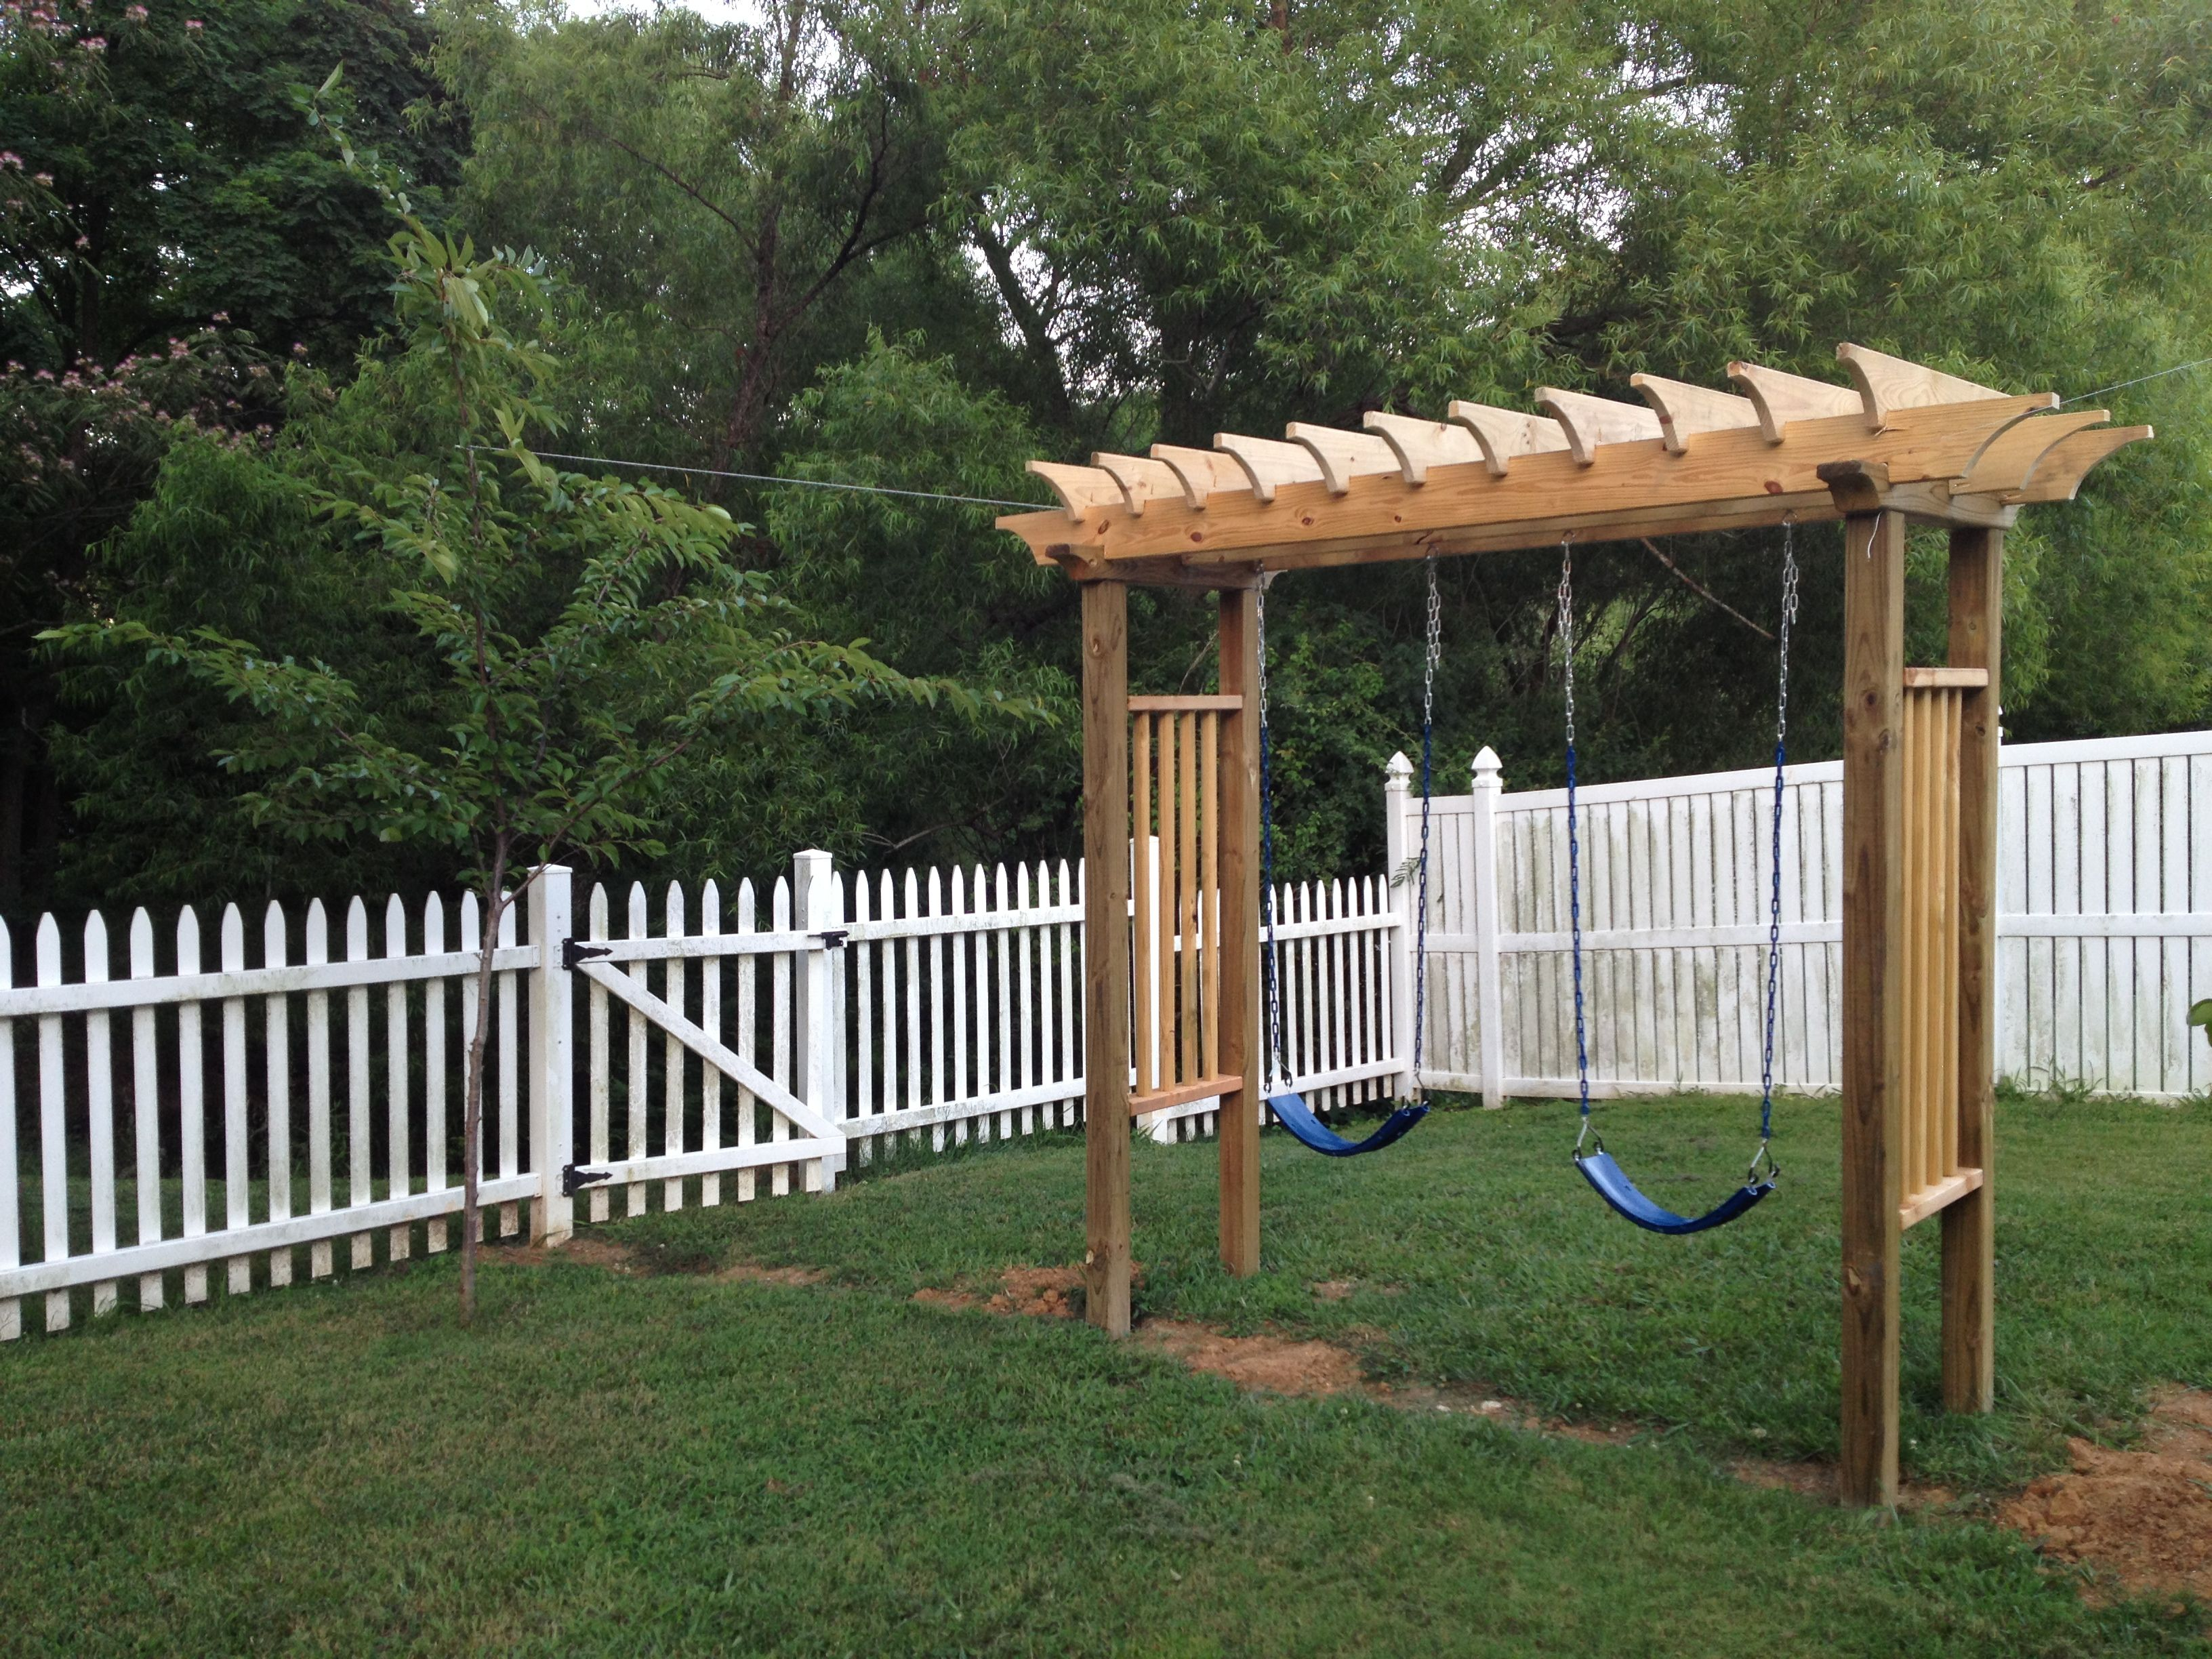 Swing Set Built Kids. Outgrow Make